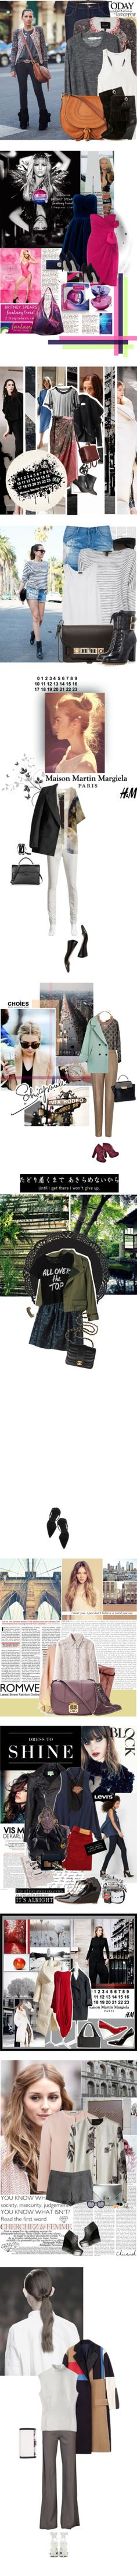 """Top Sets for Nov 18th, 2012"" by polyvore ❤ liked on Polyvore"